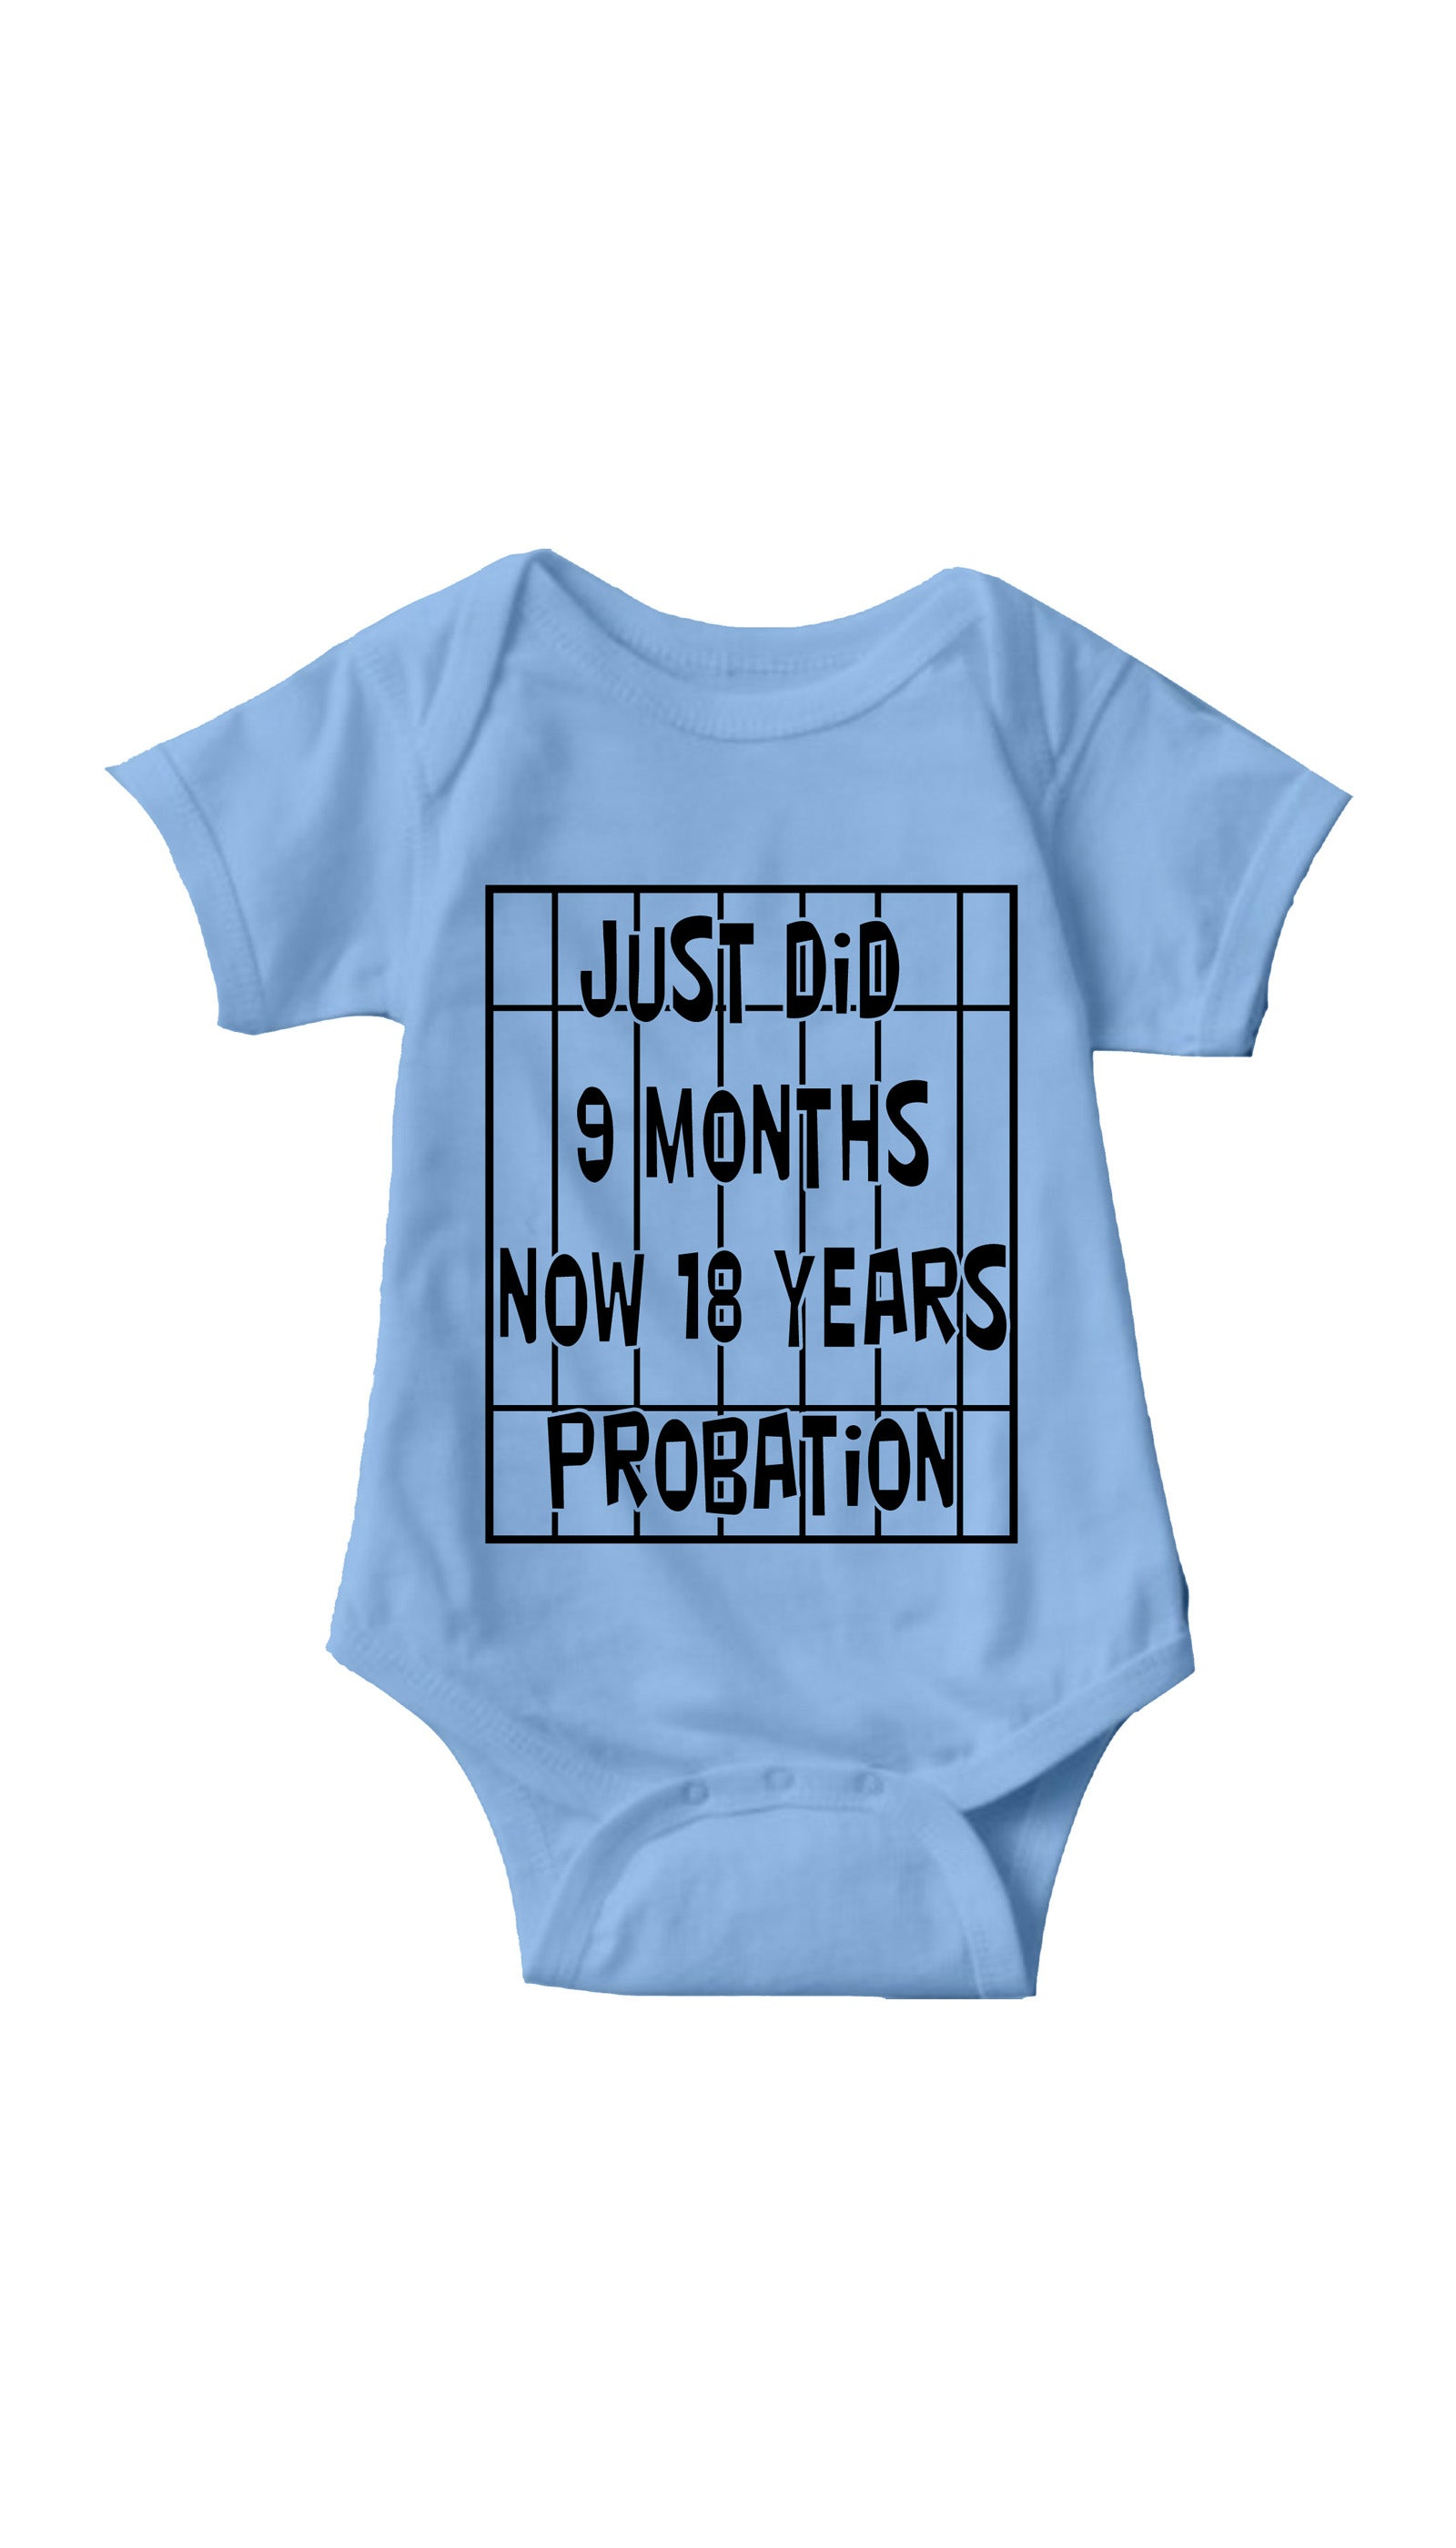 Just Did 9 Months Now 18 Years Probation Light Blue Infant Onesie | Sarcastic ME